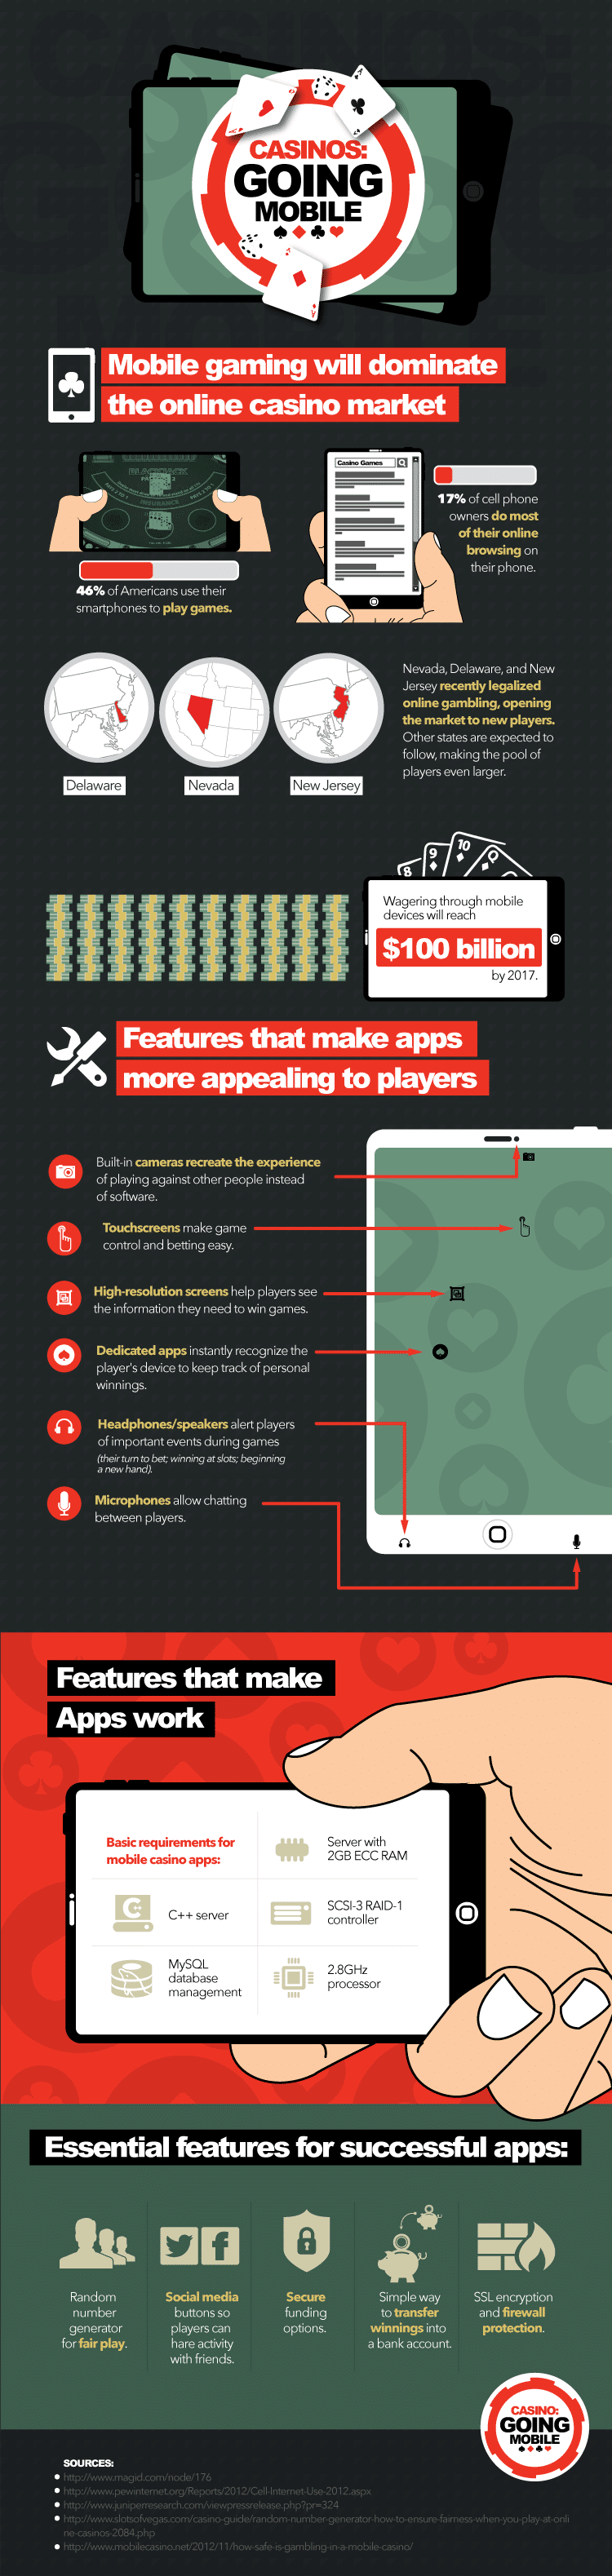 Mobile Casinos – The Modern Way To Enjoy Online Gambling [Infographic]